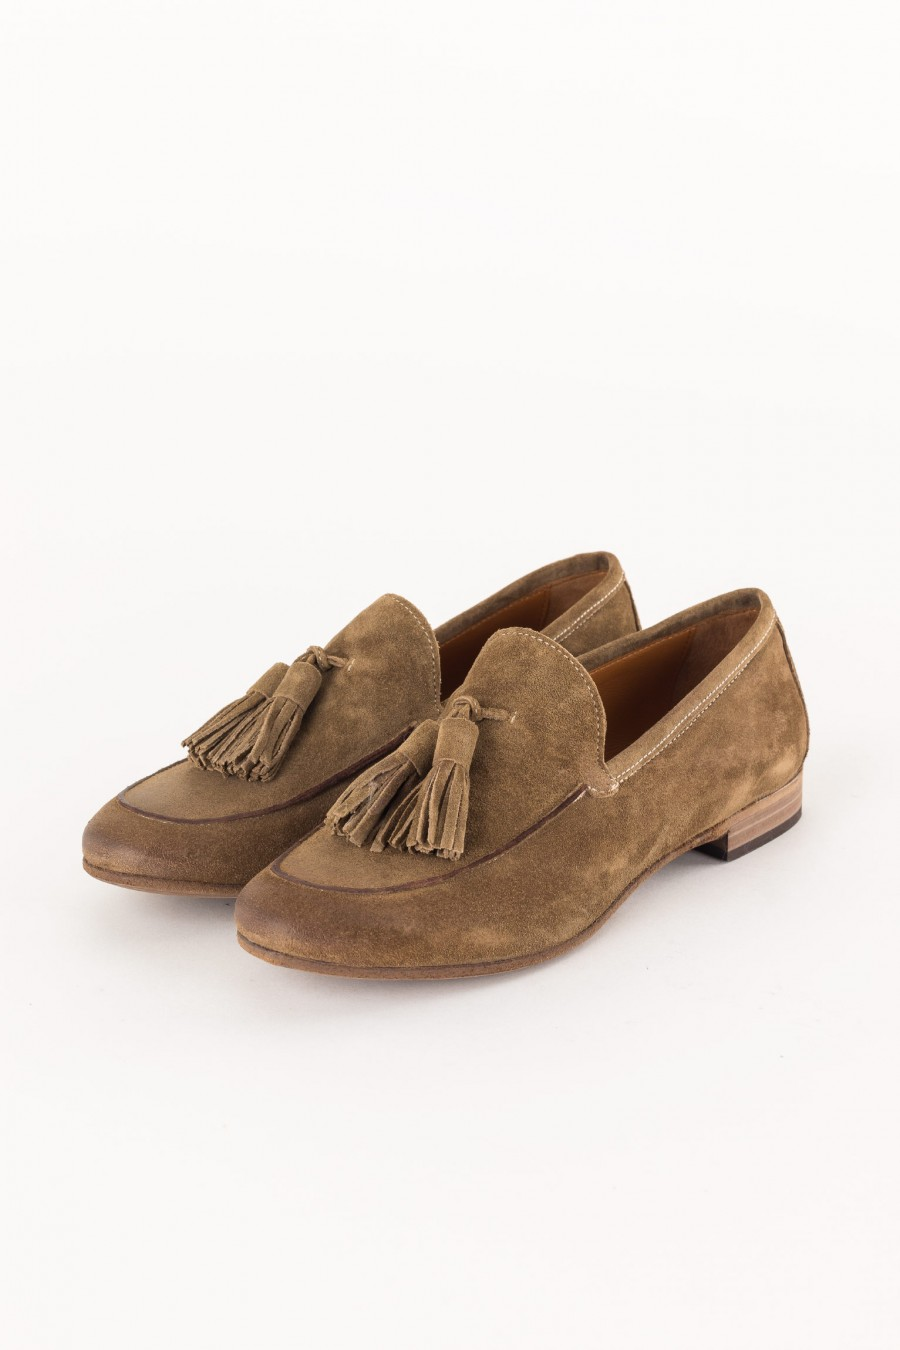 suede brown loafer with tassels